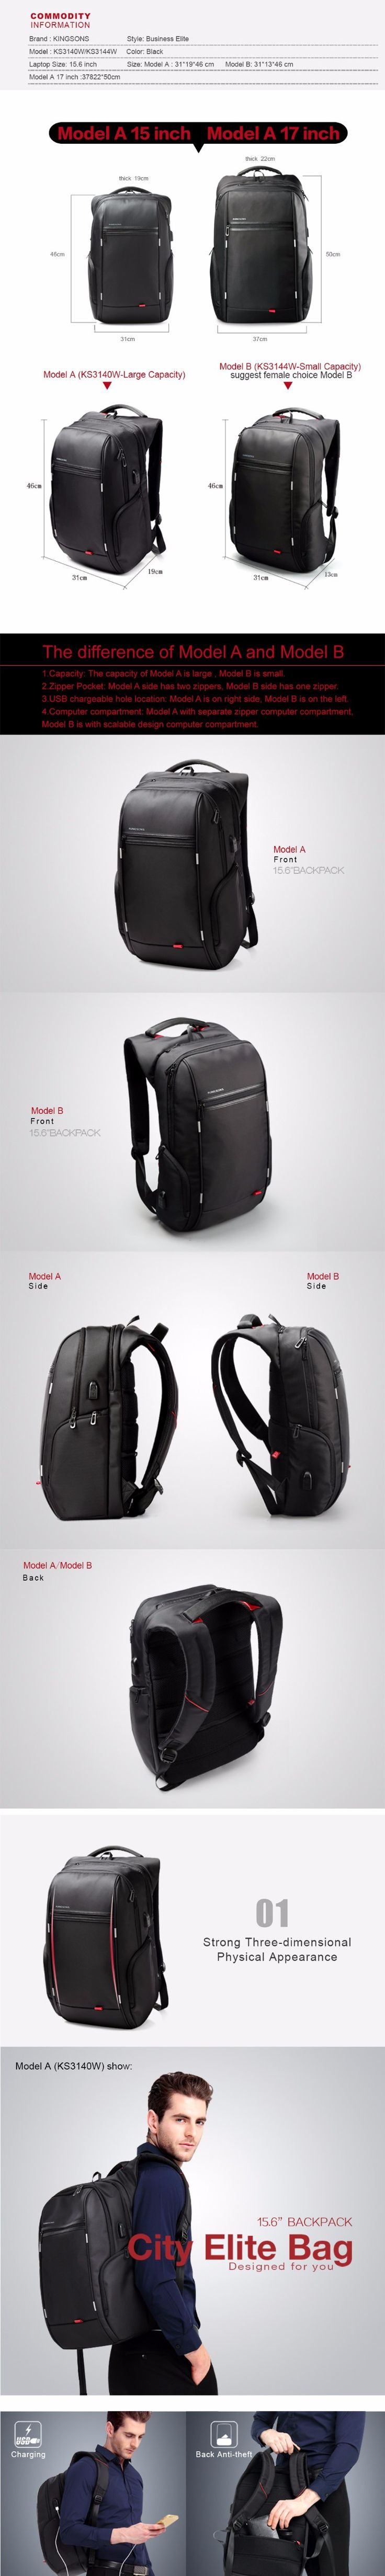 Note: There is no mobile power comes with the backpack inside.  If you want to use External USB Charge Function, you have to do as follows:  1.Buy a mobile power   2.Connect your mobile power with the USB interface inside the backpack    3.Connect your phone with the USB interface outside the...  http://www.nboempire.com/products/kingsons-brand-external-usb-charge-computer-bag-anti-theft-notebook-backpack-1517-inch-waterproof-laptop-backpack-for-men-women/